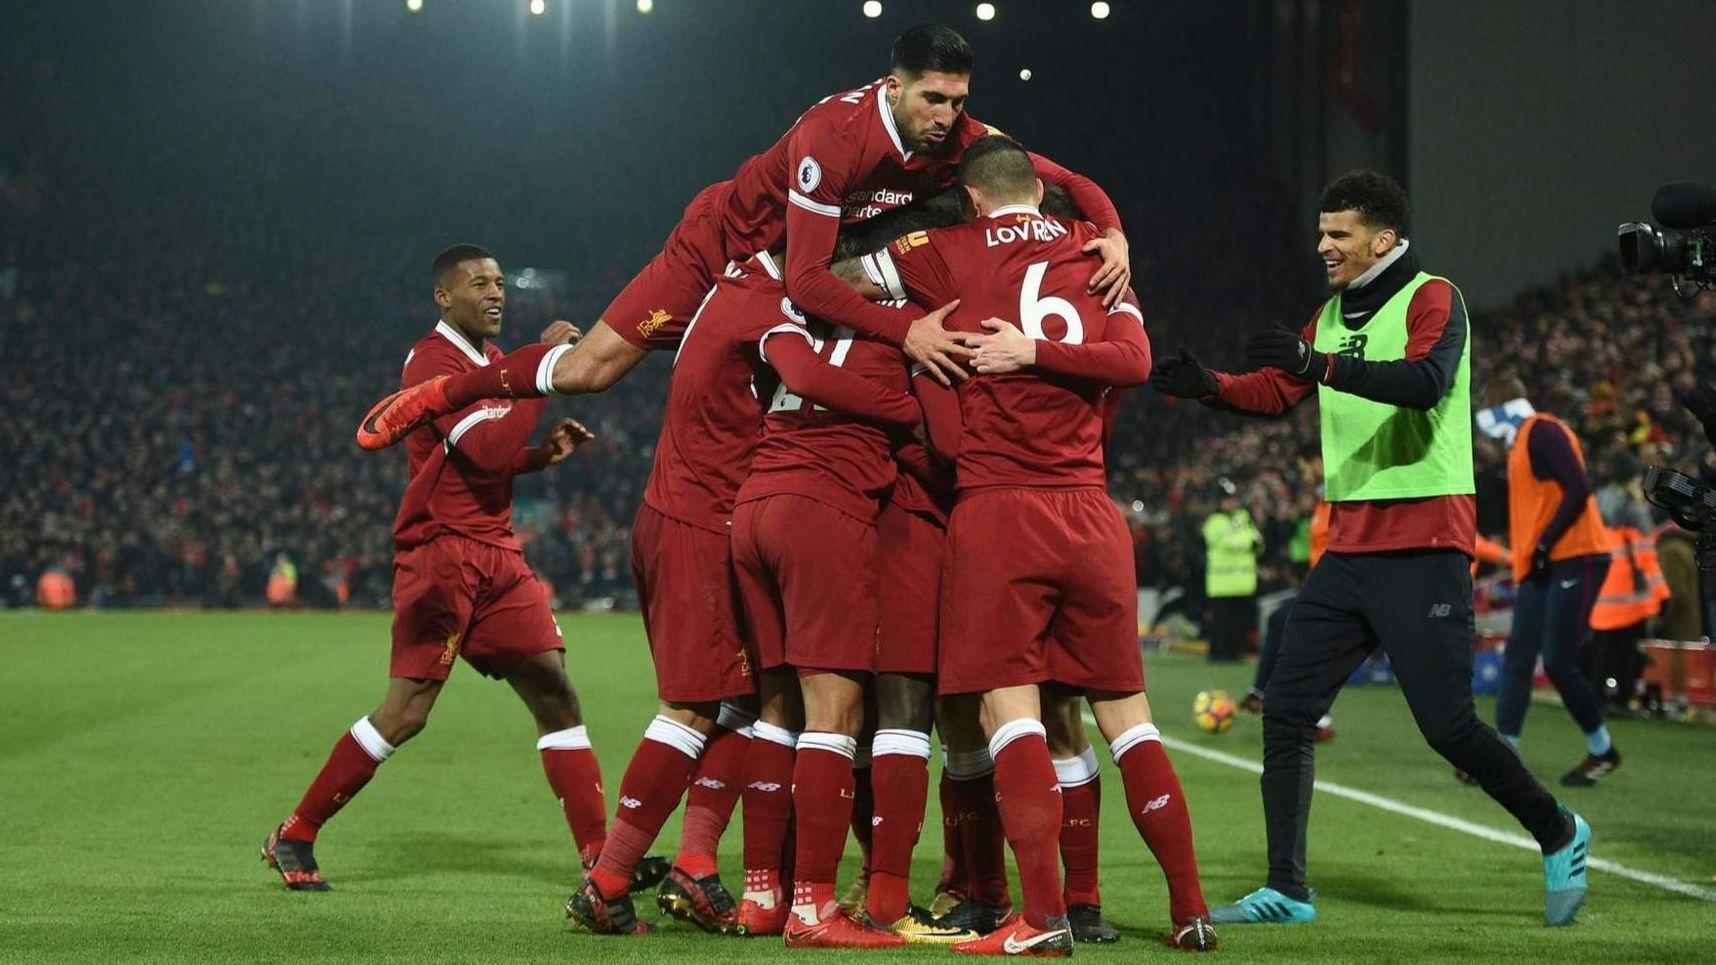 Liverpool - Top 10 Football Clubs In Europe, 2018